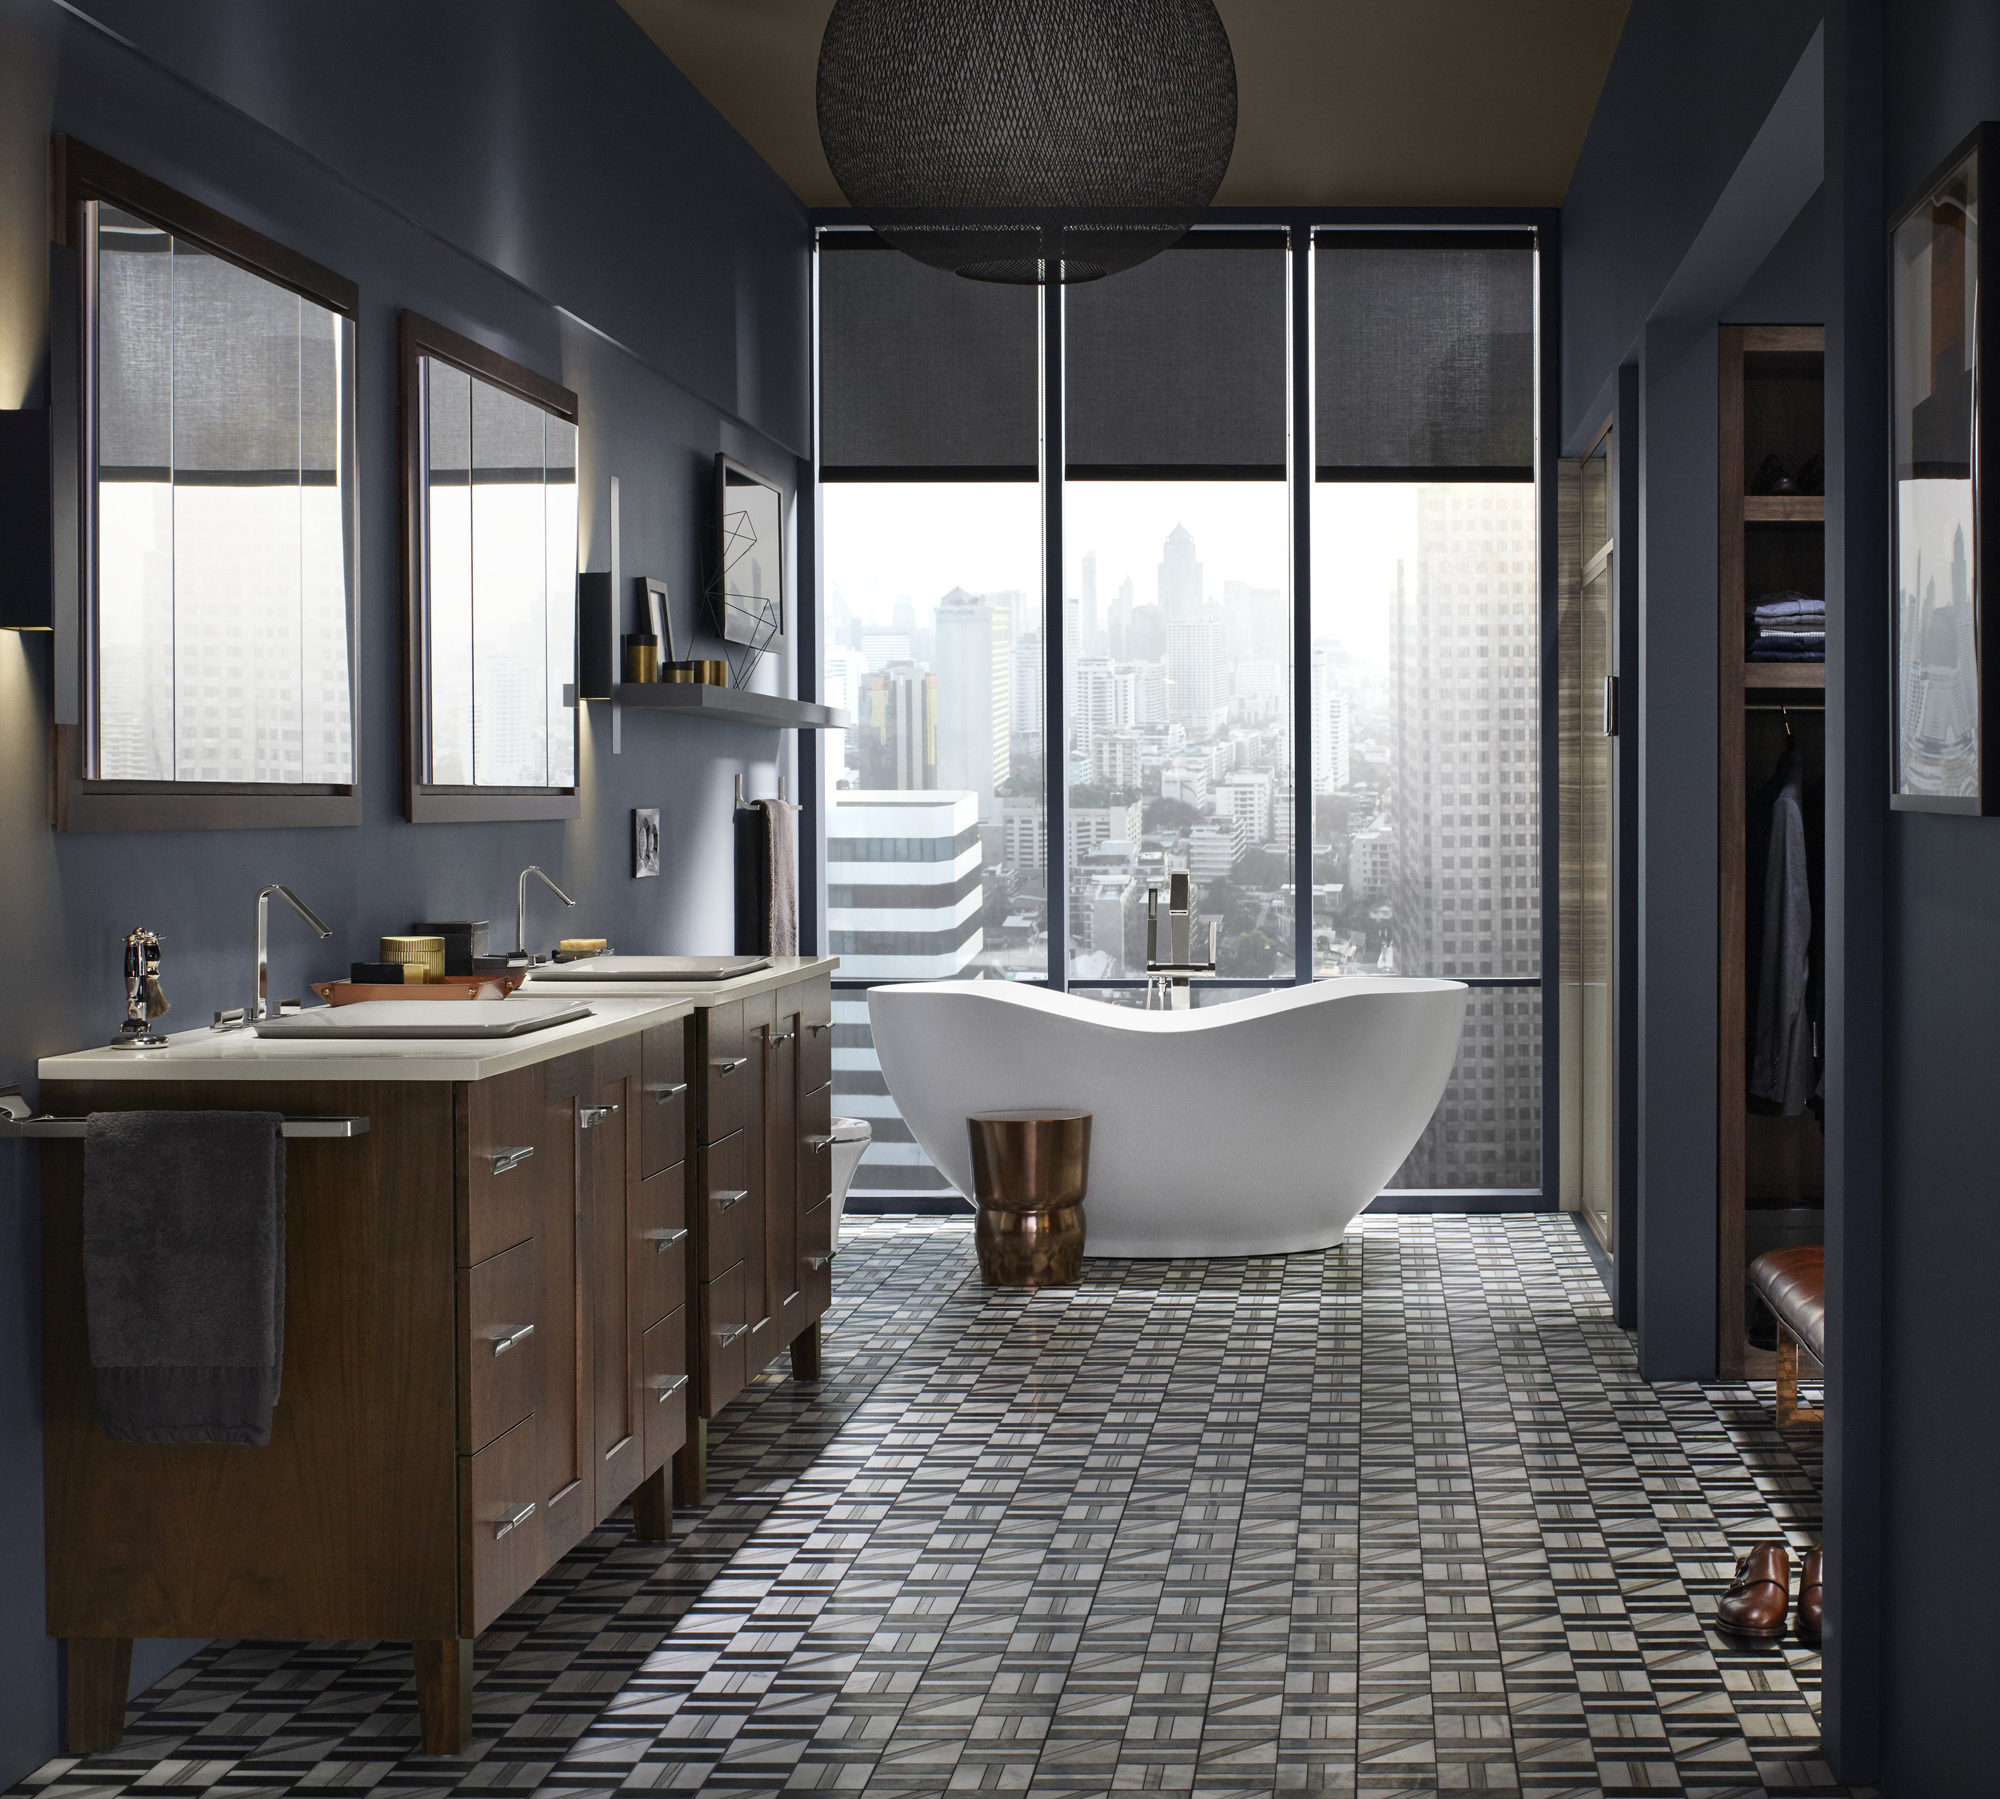 Poplin® vanity    Carillon® Wading Pool® sink    Abrazo® bath    ANN SACKS® Liaison tile     Perfectly placed by the window, this organic, oval-shaped bath draws the eyes toward captivating views of the city.